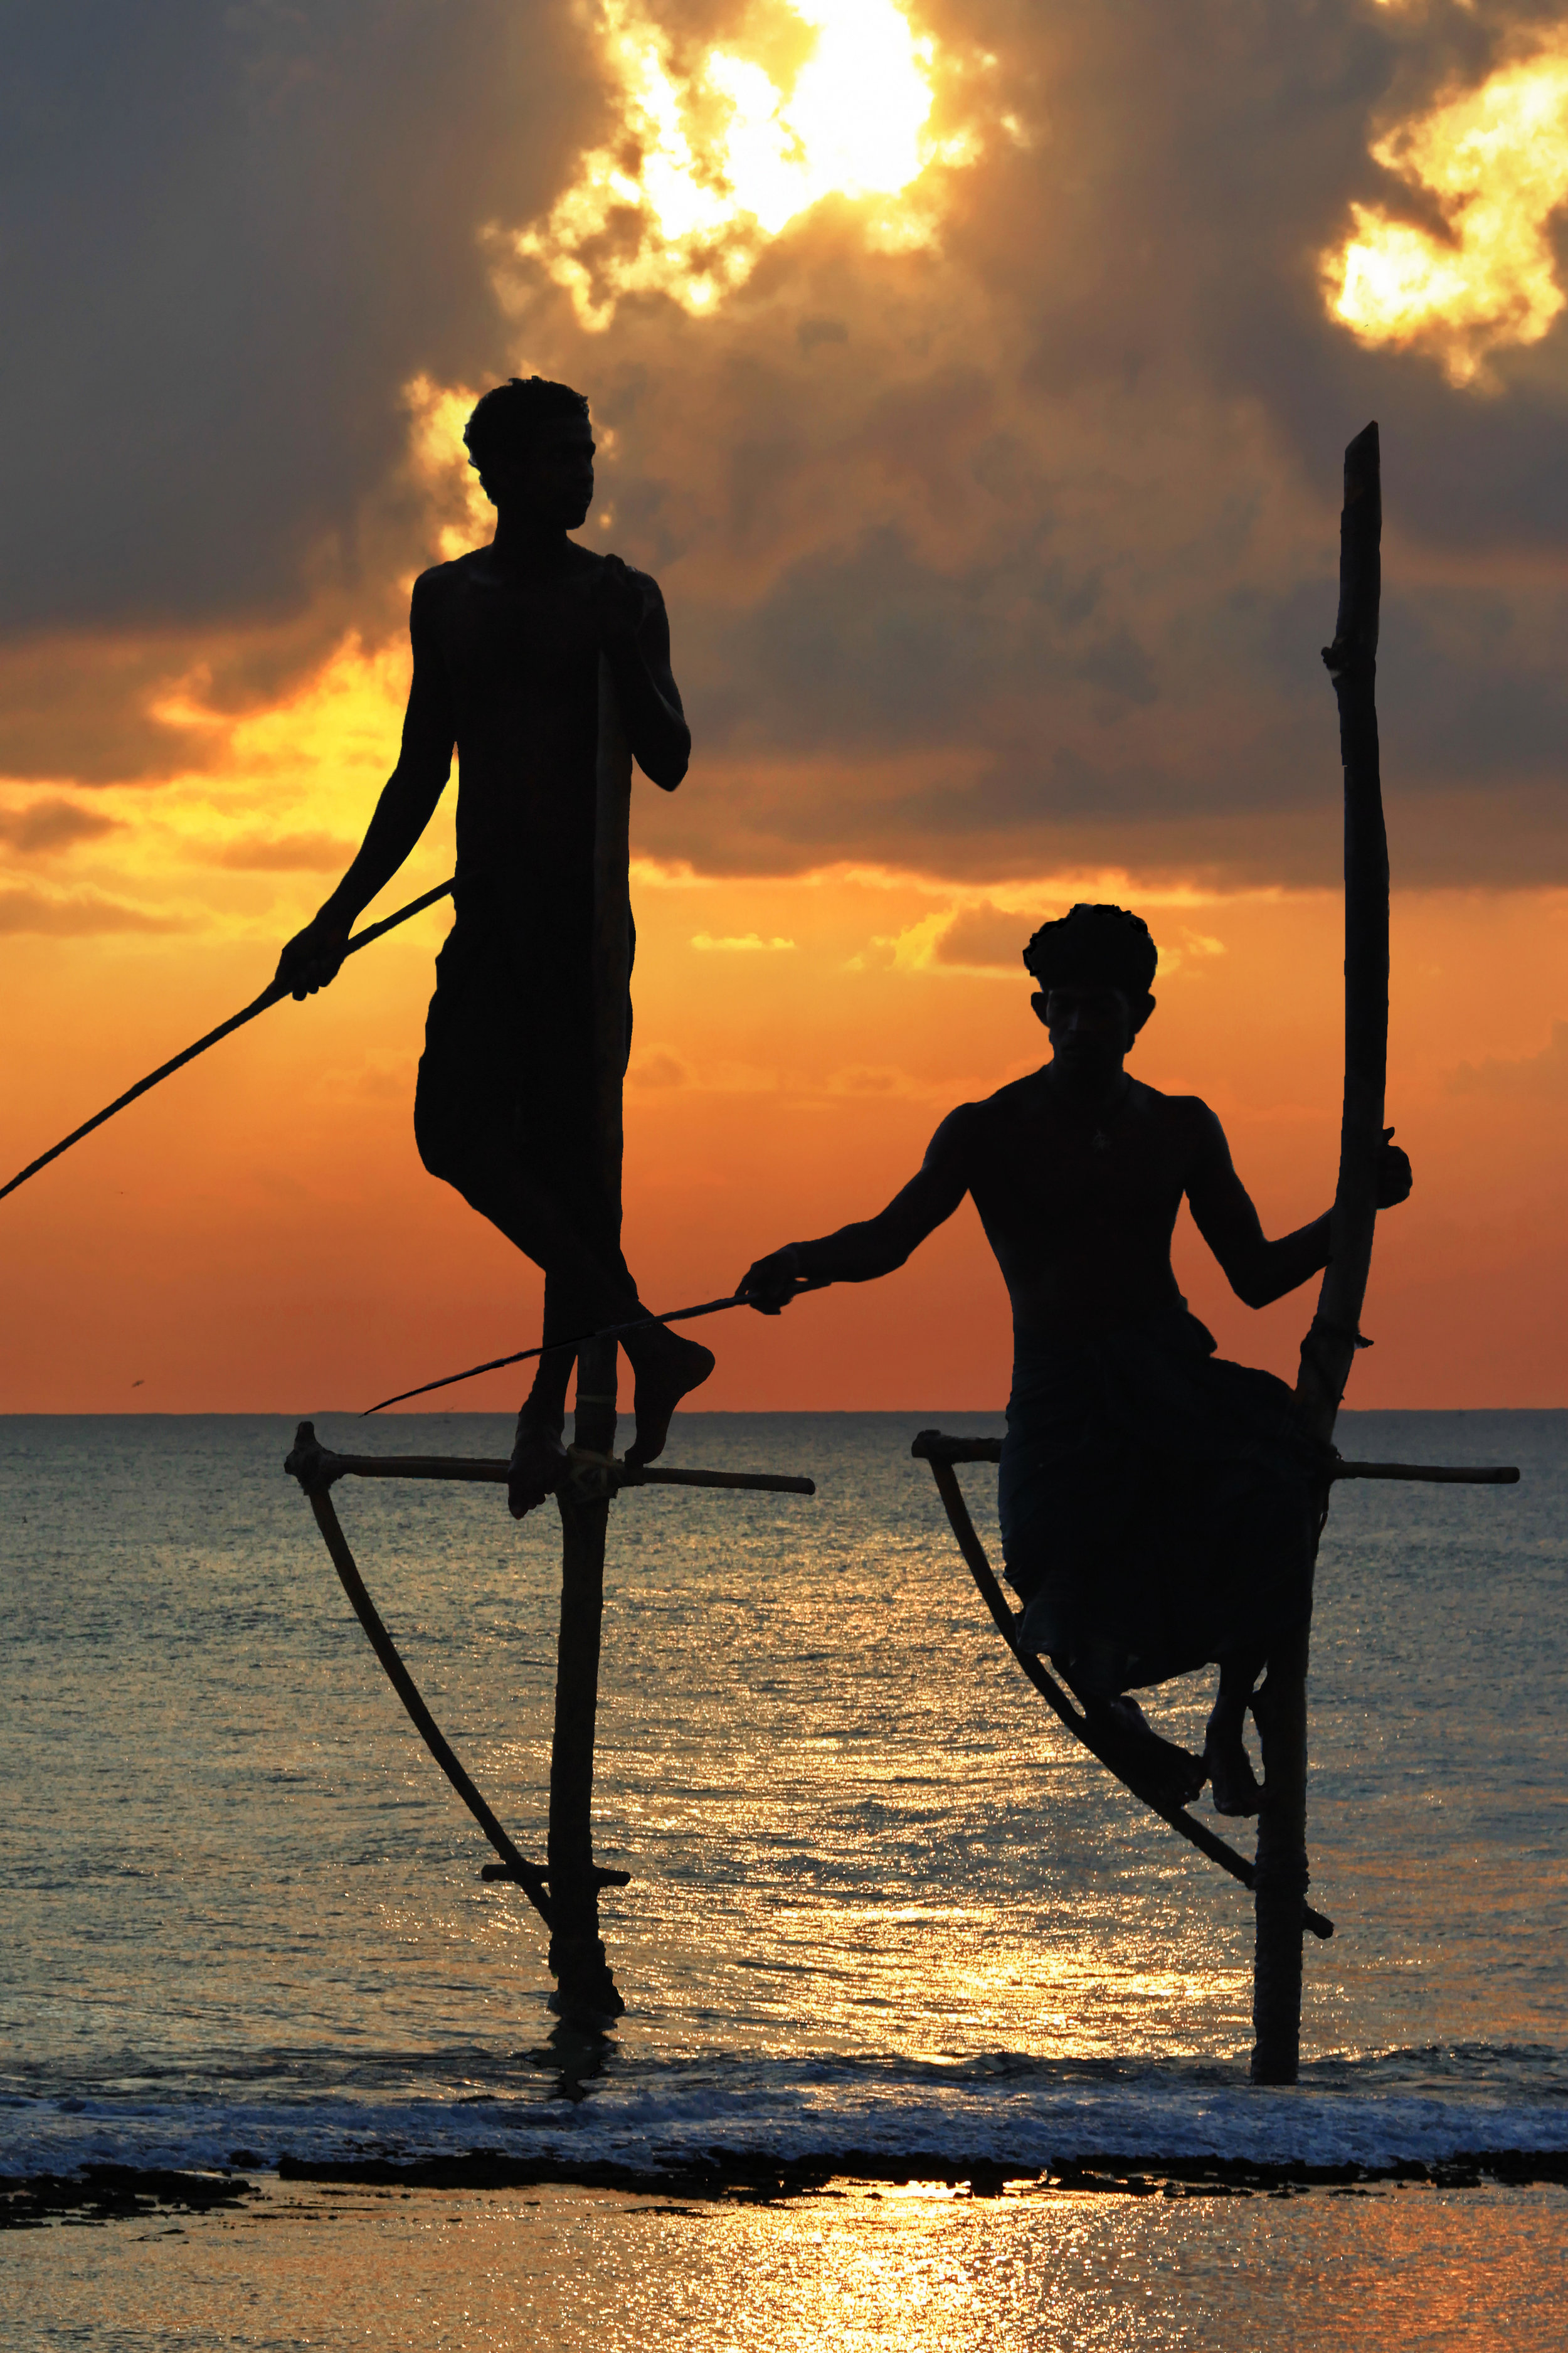 invite-to-paradise-maldives-sri-lanka-specialists-experts-travel-agent-tour-operator-stilt-fisherman-111446027.jpg